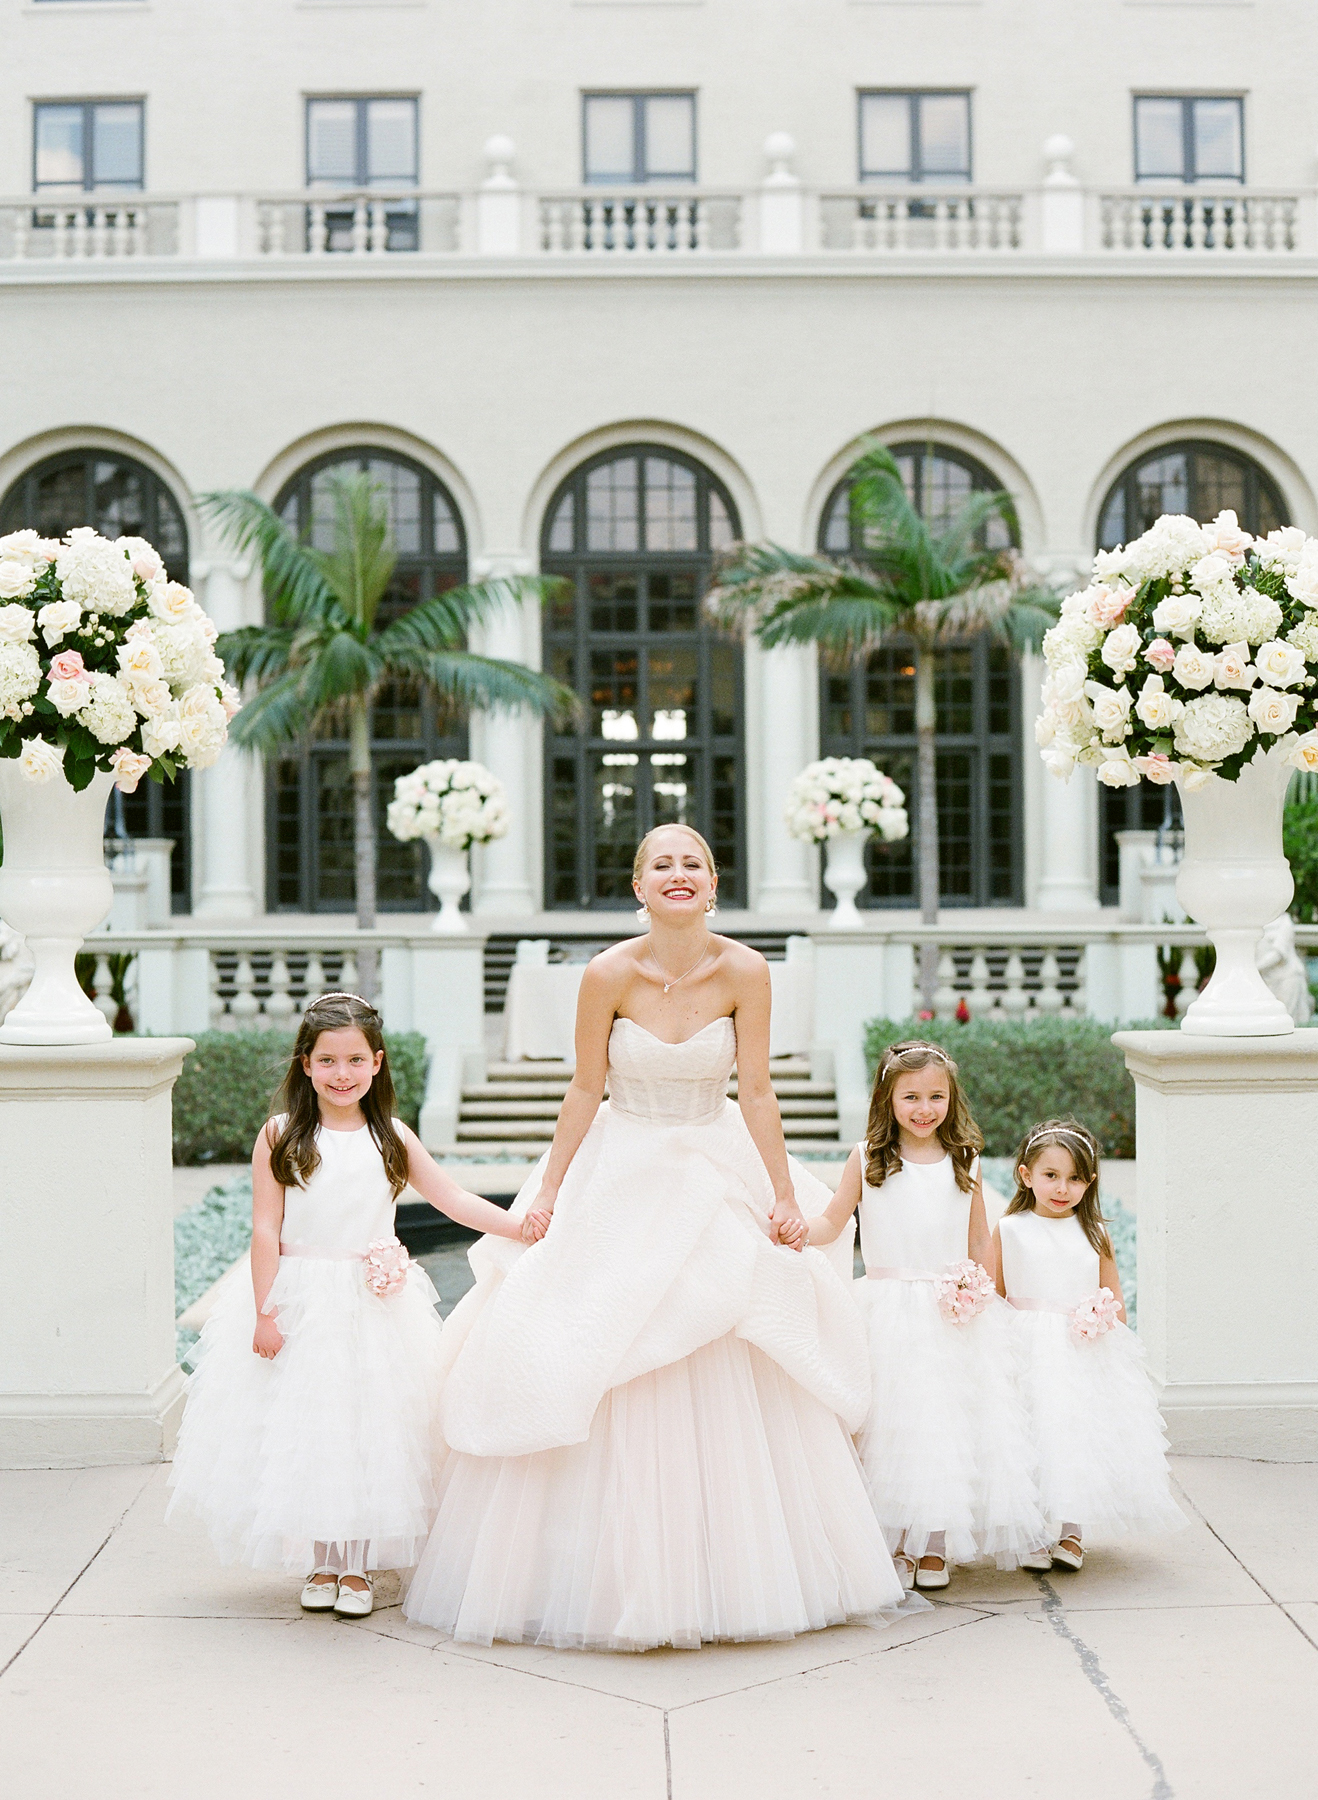 Bride in blush gown with tulle skirt